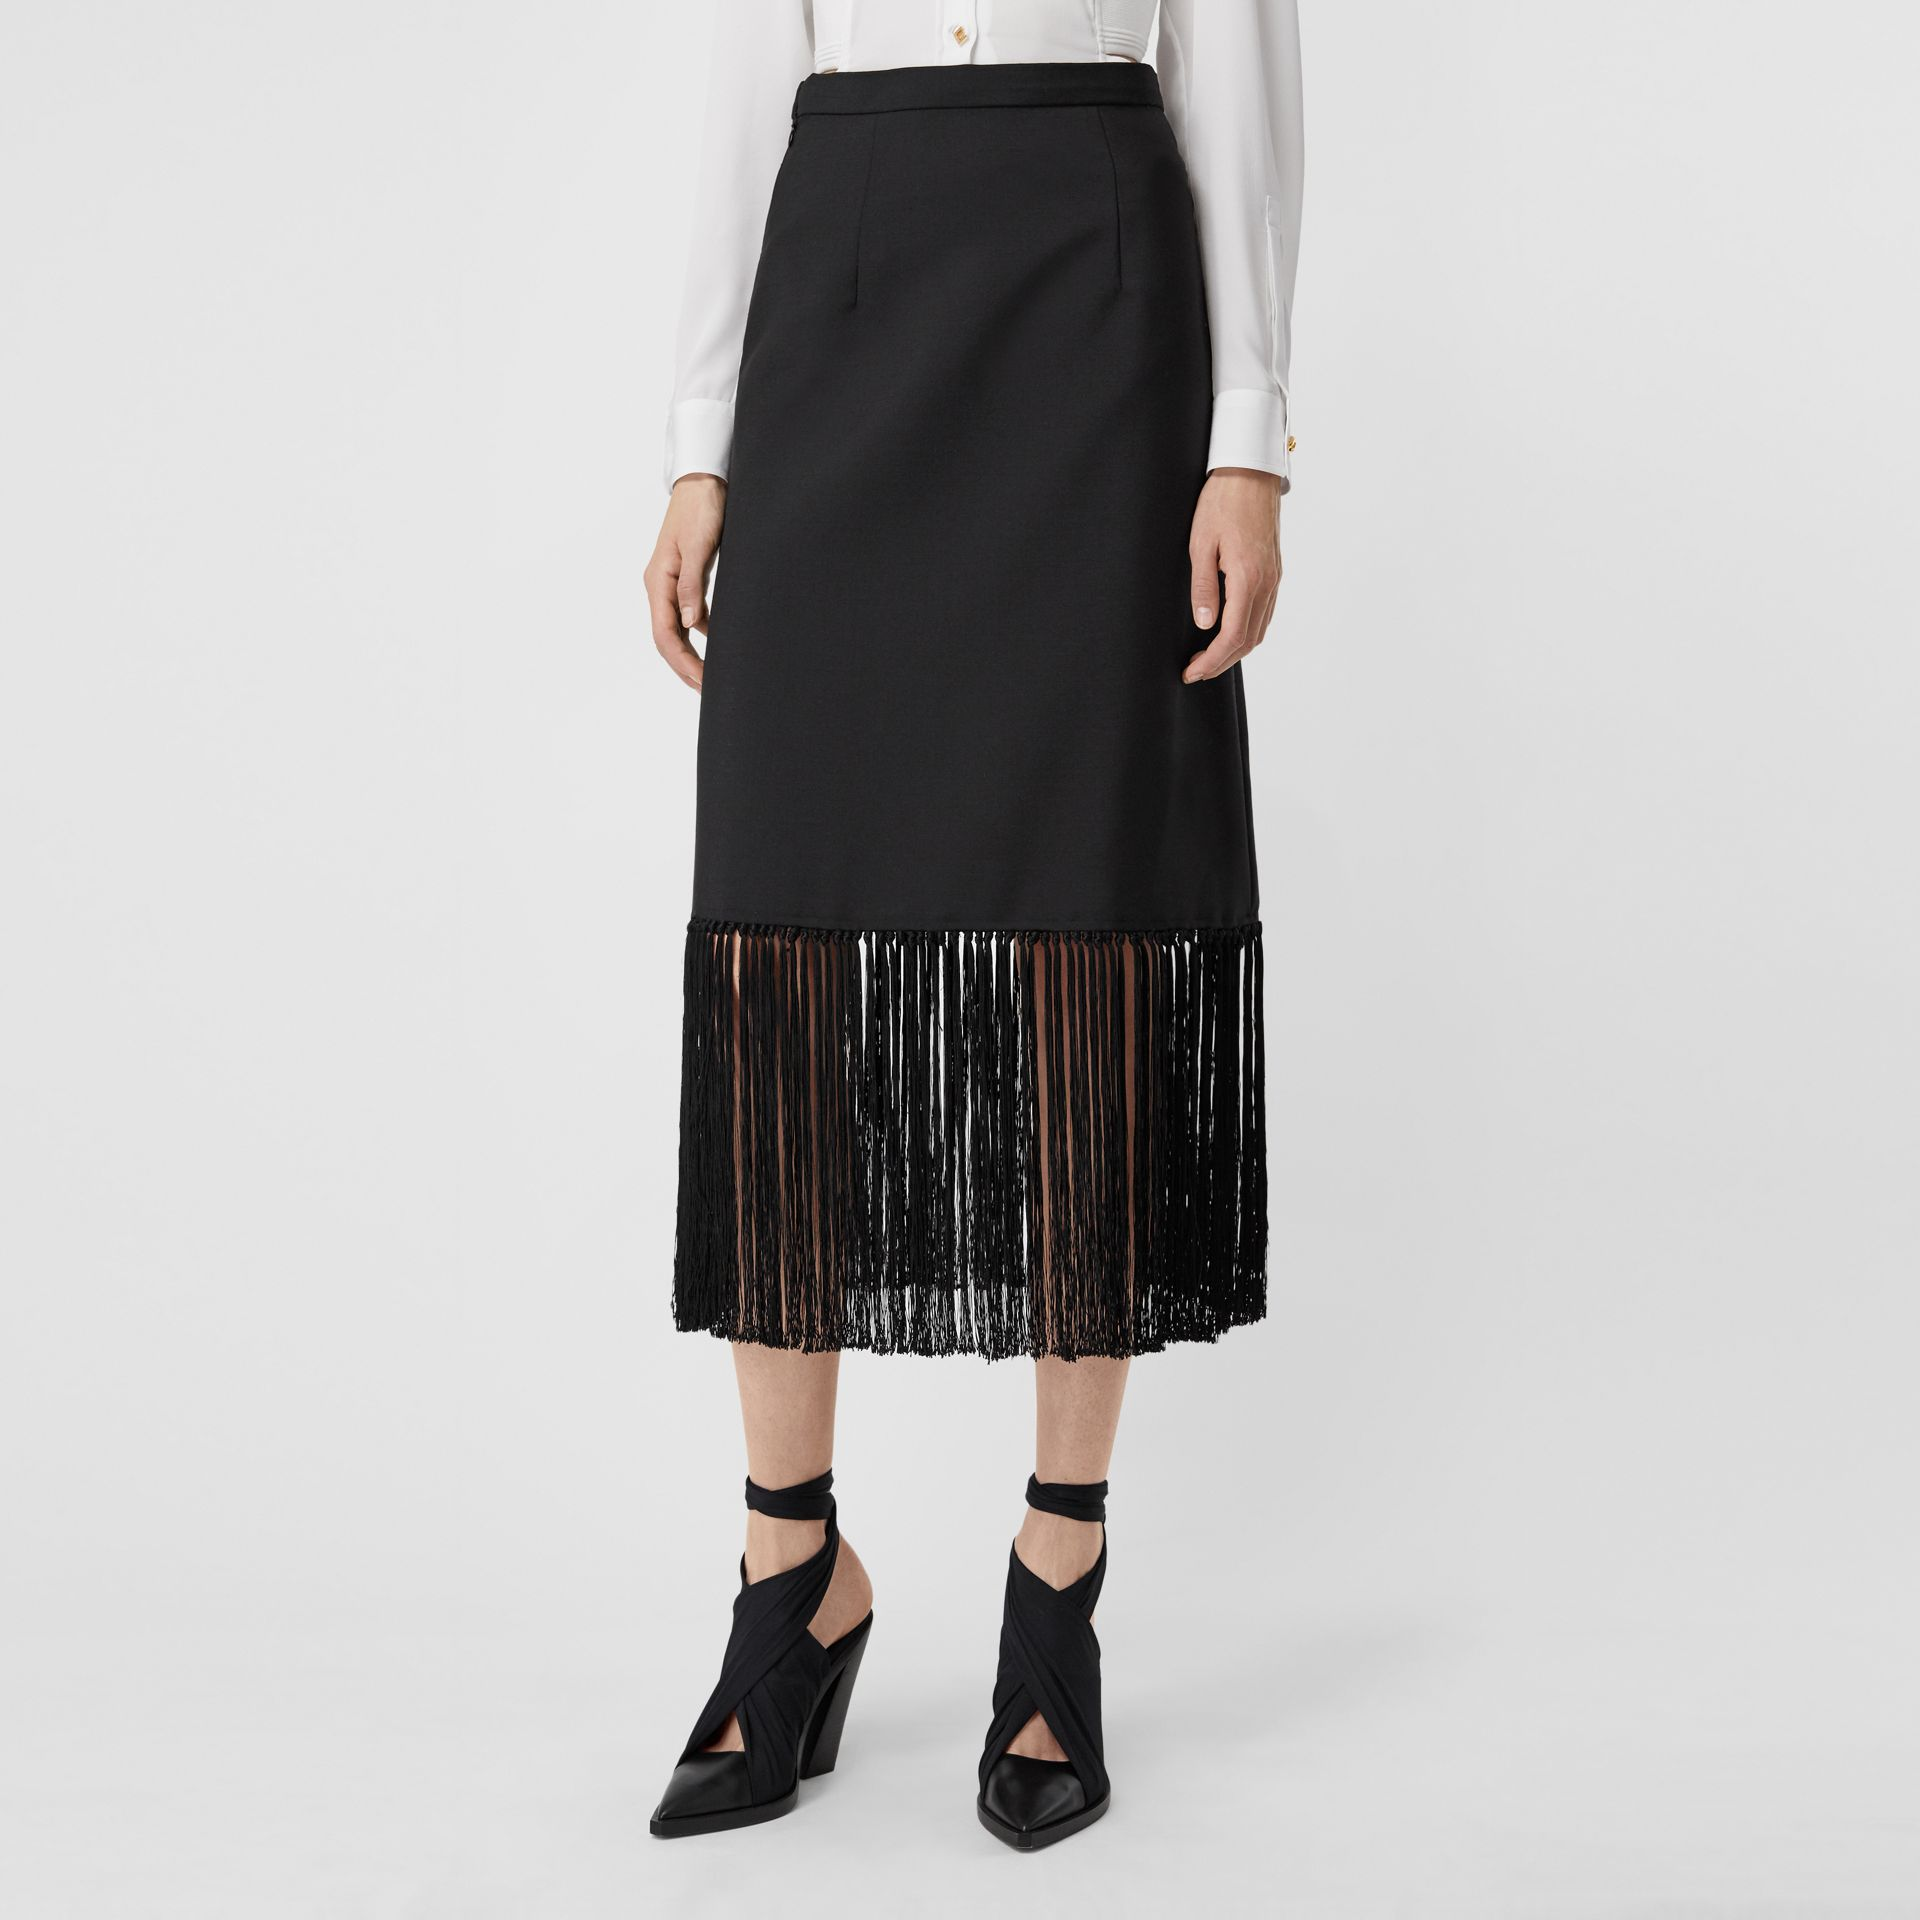 Fringed Mohair Wool A-line Skirt in Black - Women | Burberry - gallery image 4